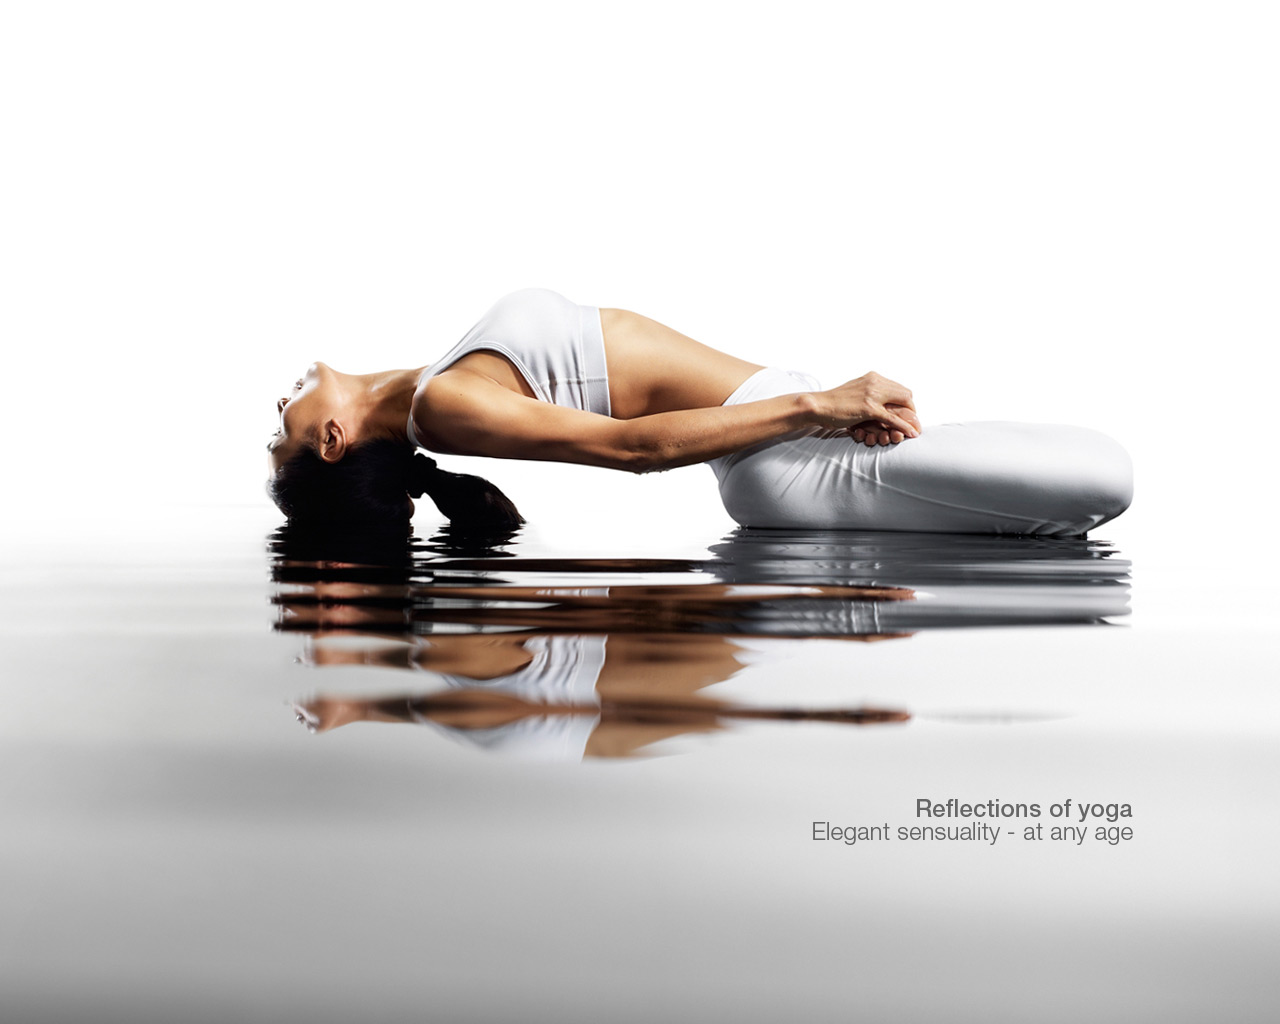 78 Best images about yoga on Pinterest | Keep calm, Meditation and